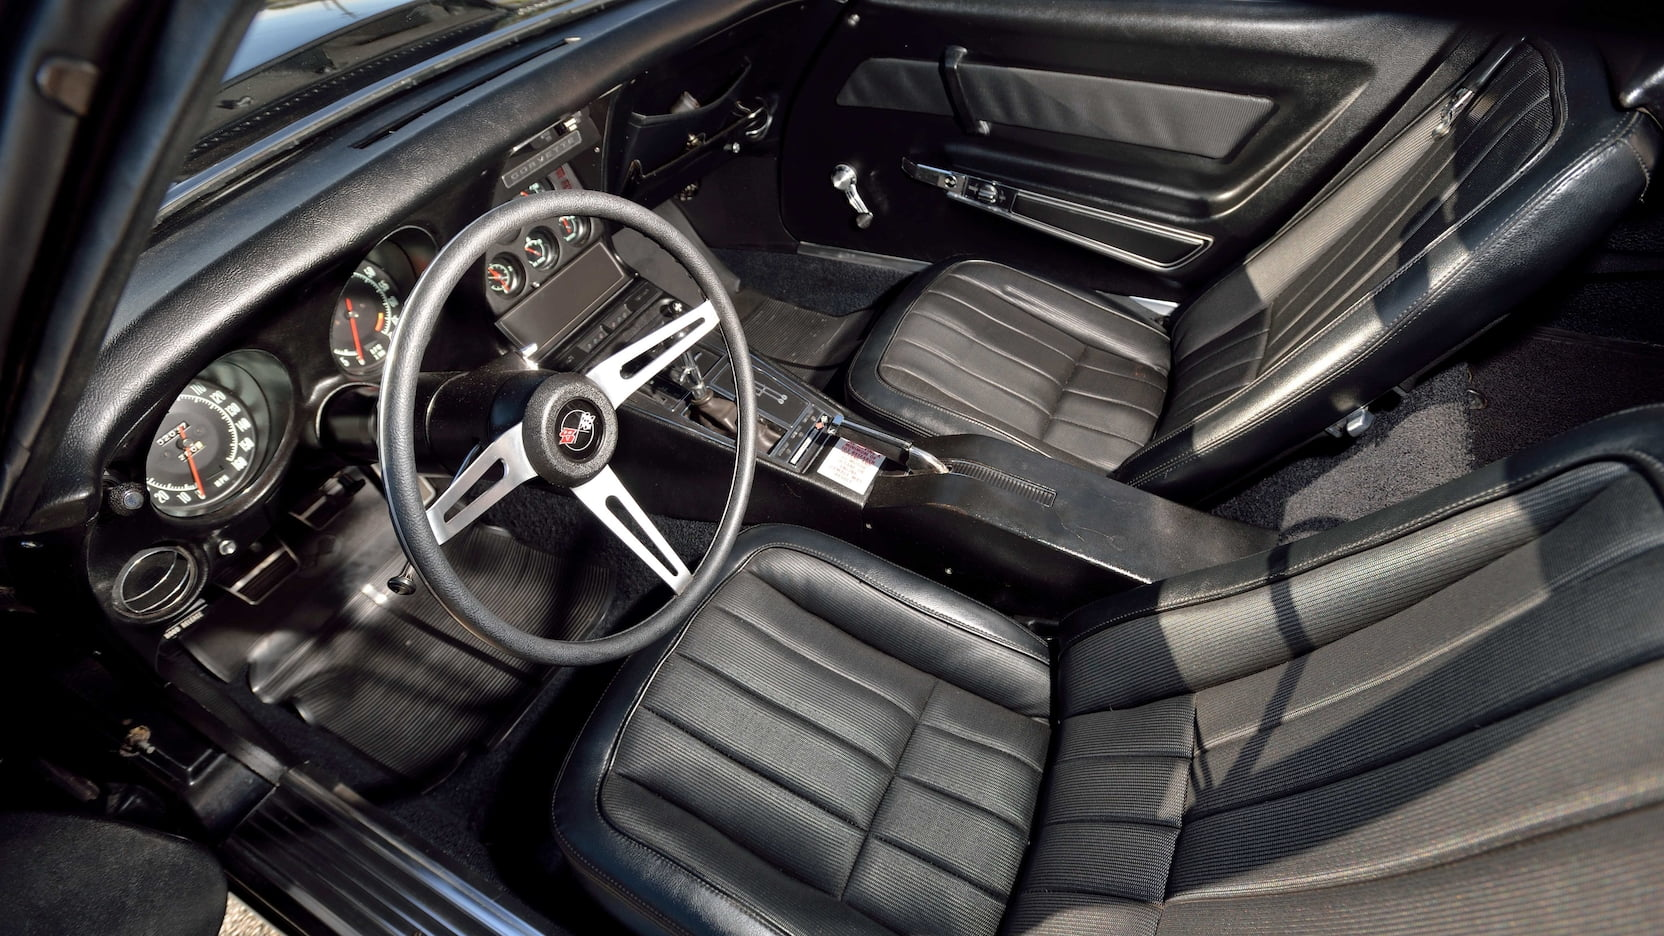 1969 Chevrolet Corvette l88 interior